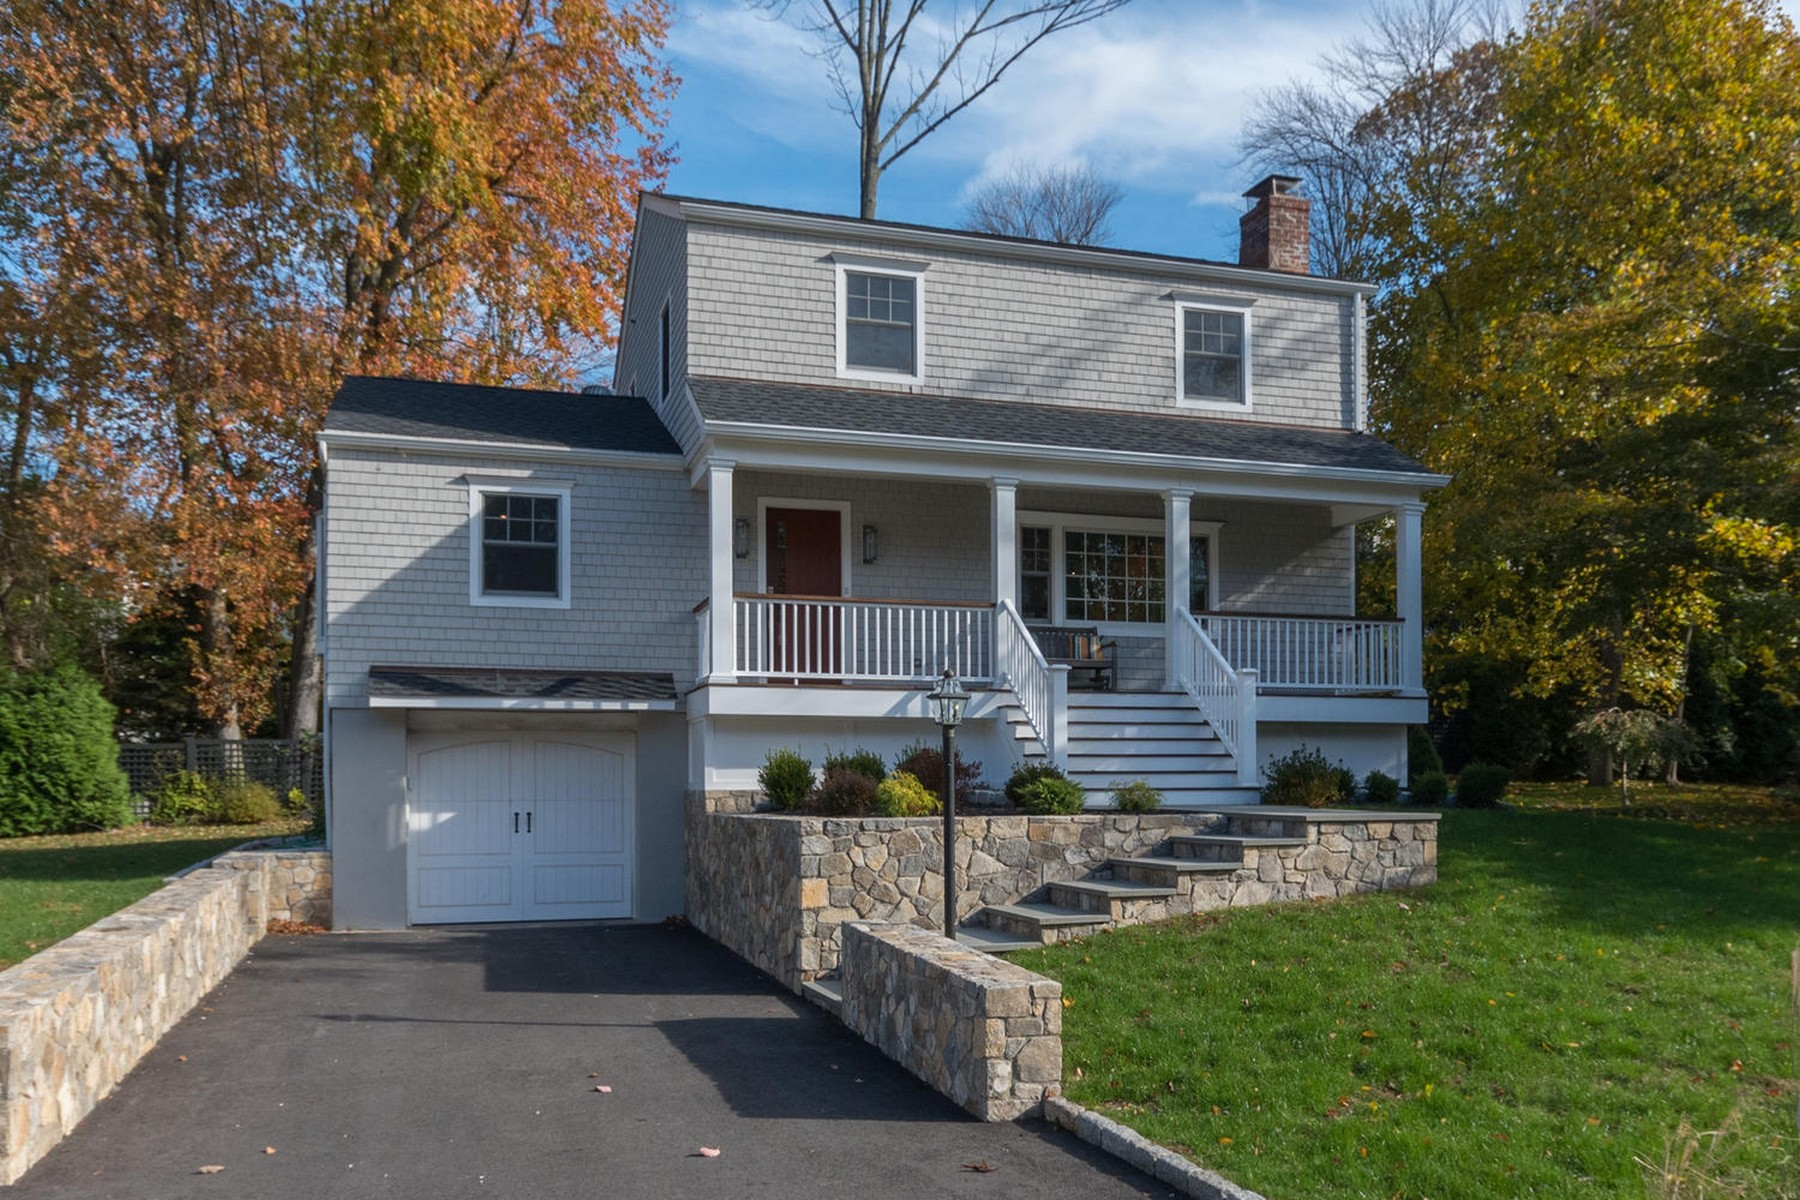 Vivienda unifamiliar por un Venta en 22 Steepletop Road Rowayton, Norwalk, Connecticut, 06853 Estados Unidos